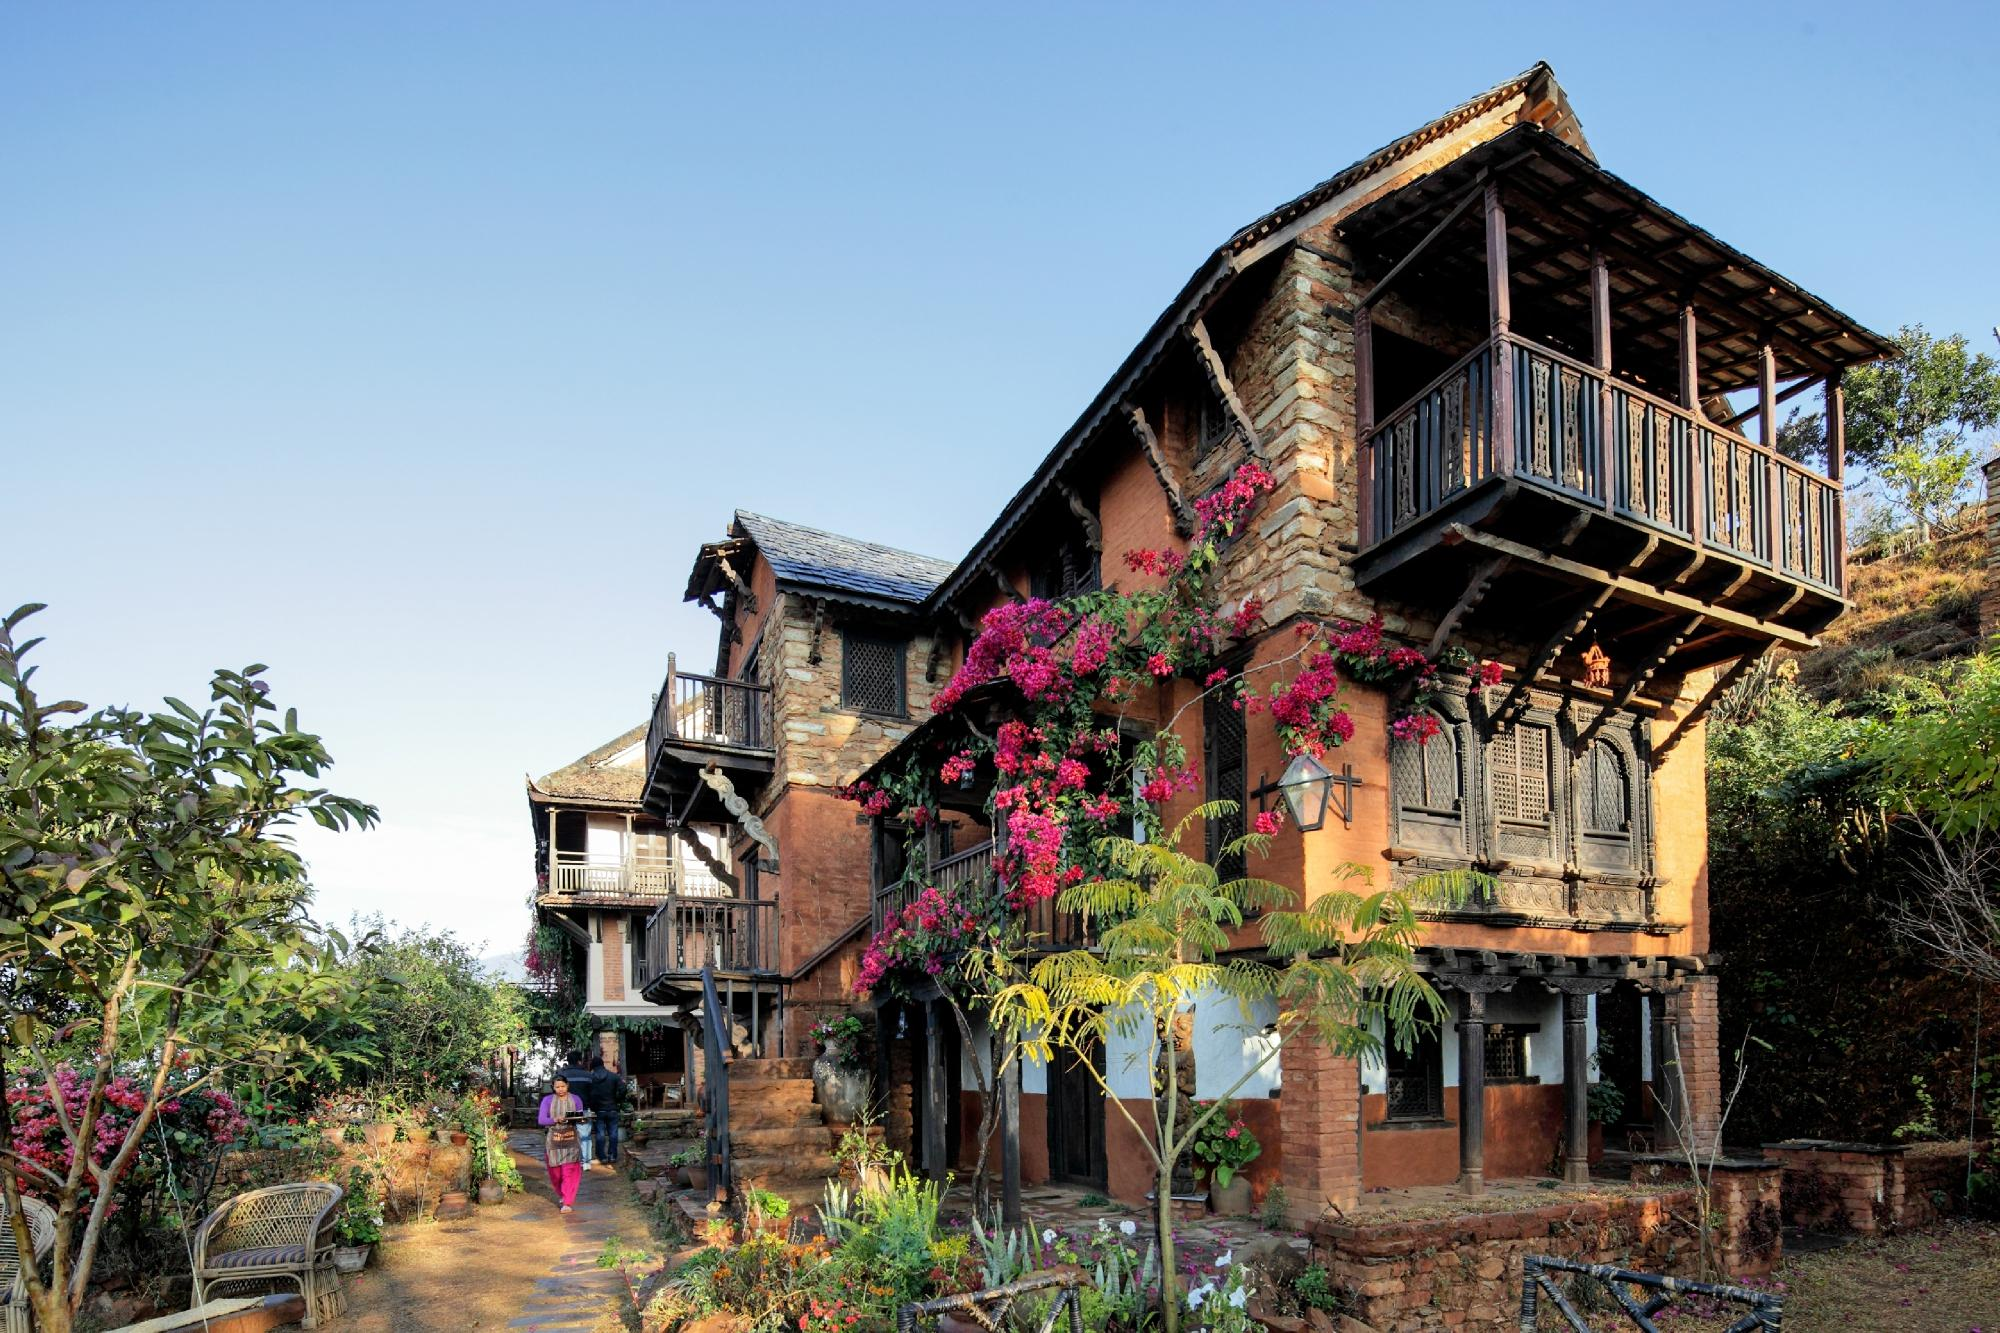 The Famous Farm - Nuwakot, NepalThe Famous Farm is located just above Nuwakot, a truly off the beaten track gem, it provides the chance to get away from the tourist trails and witness Nepal's rural authenticity in all its charm.